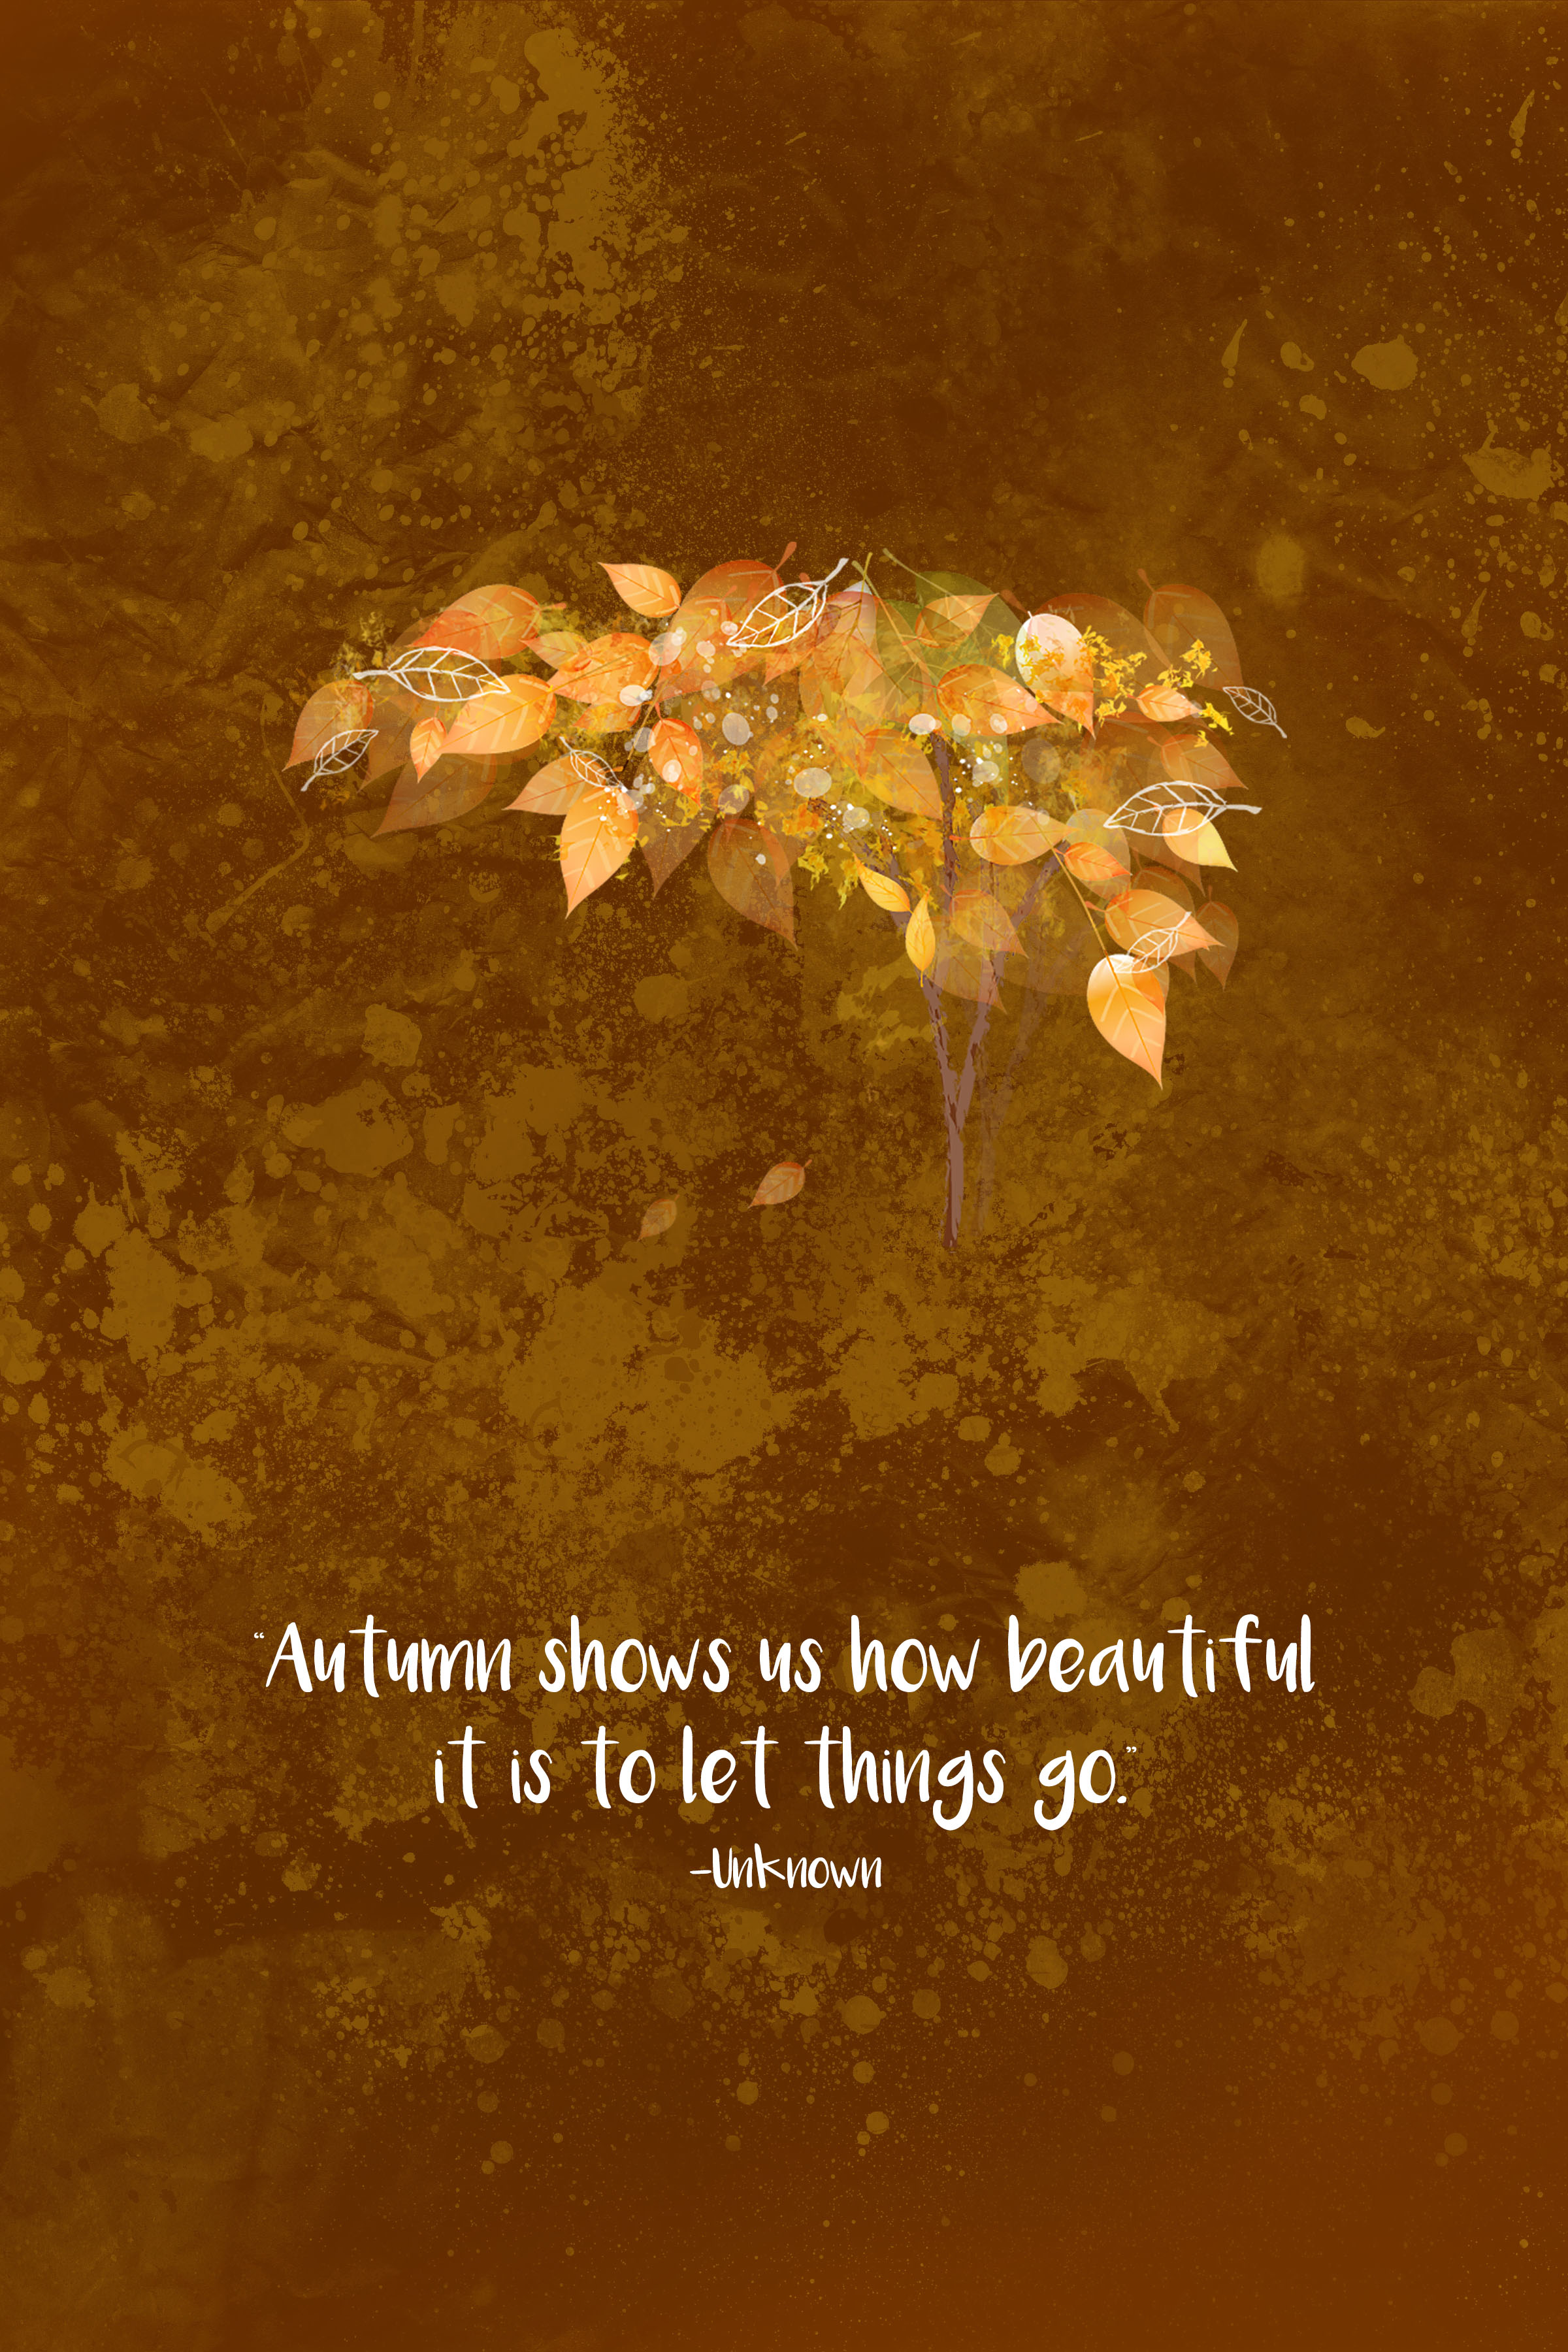 Autumn Shows Us How Beautiful It Is to Let Things Go Quote